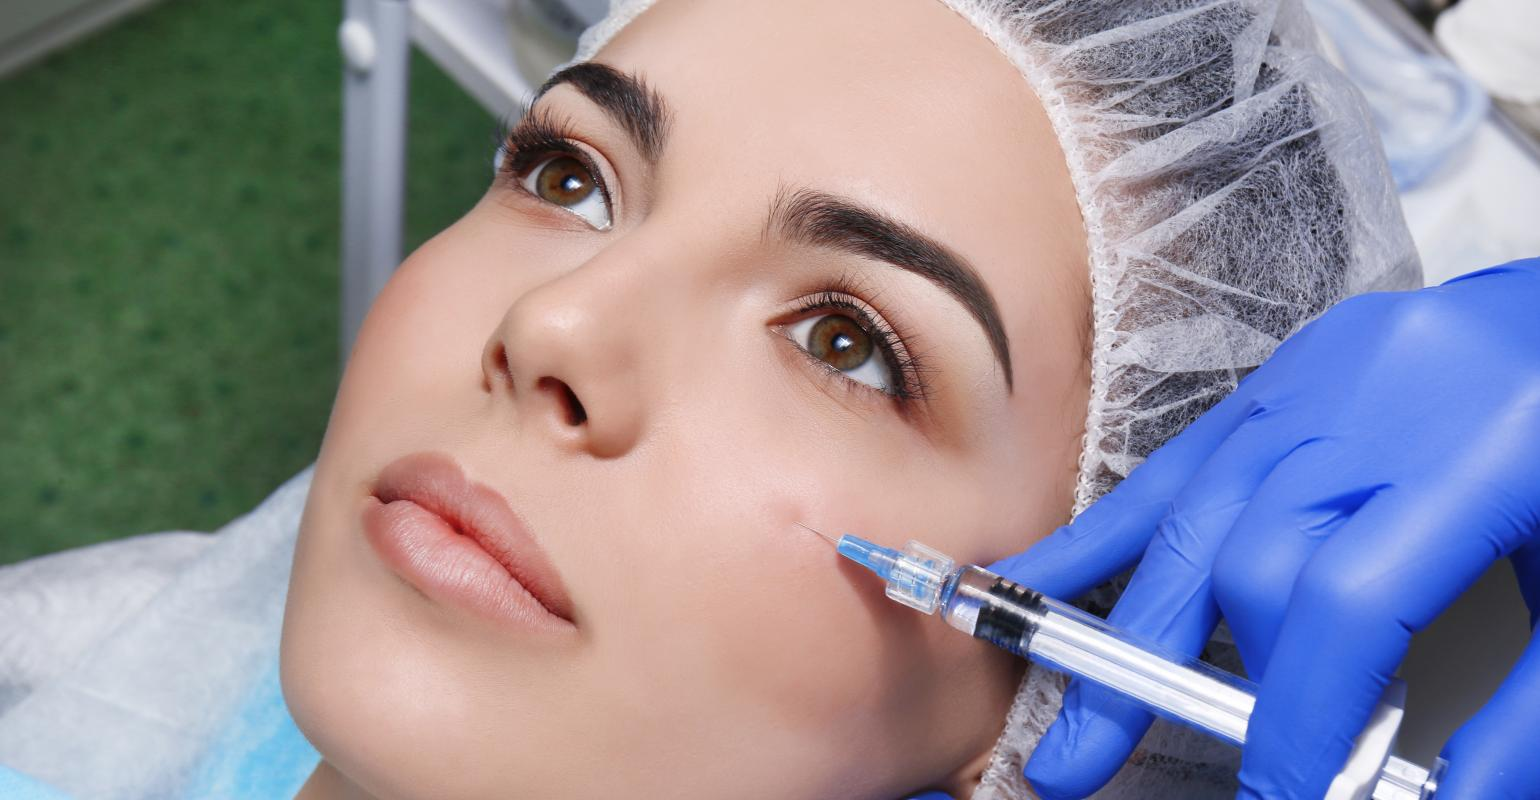 FDA approves HA filler for midface via cannula injection |  theaestheticguide.com